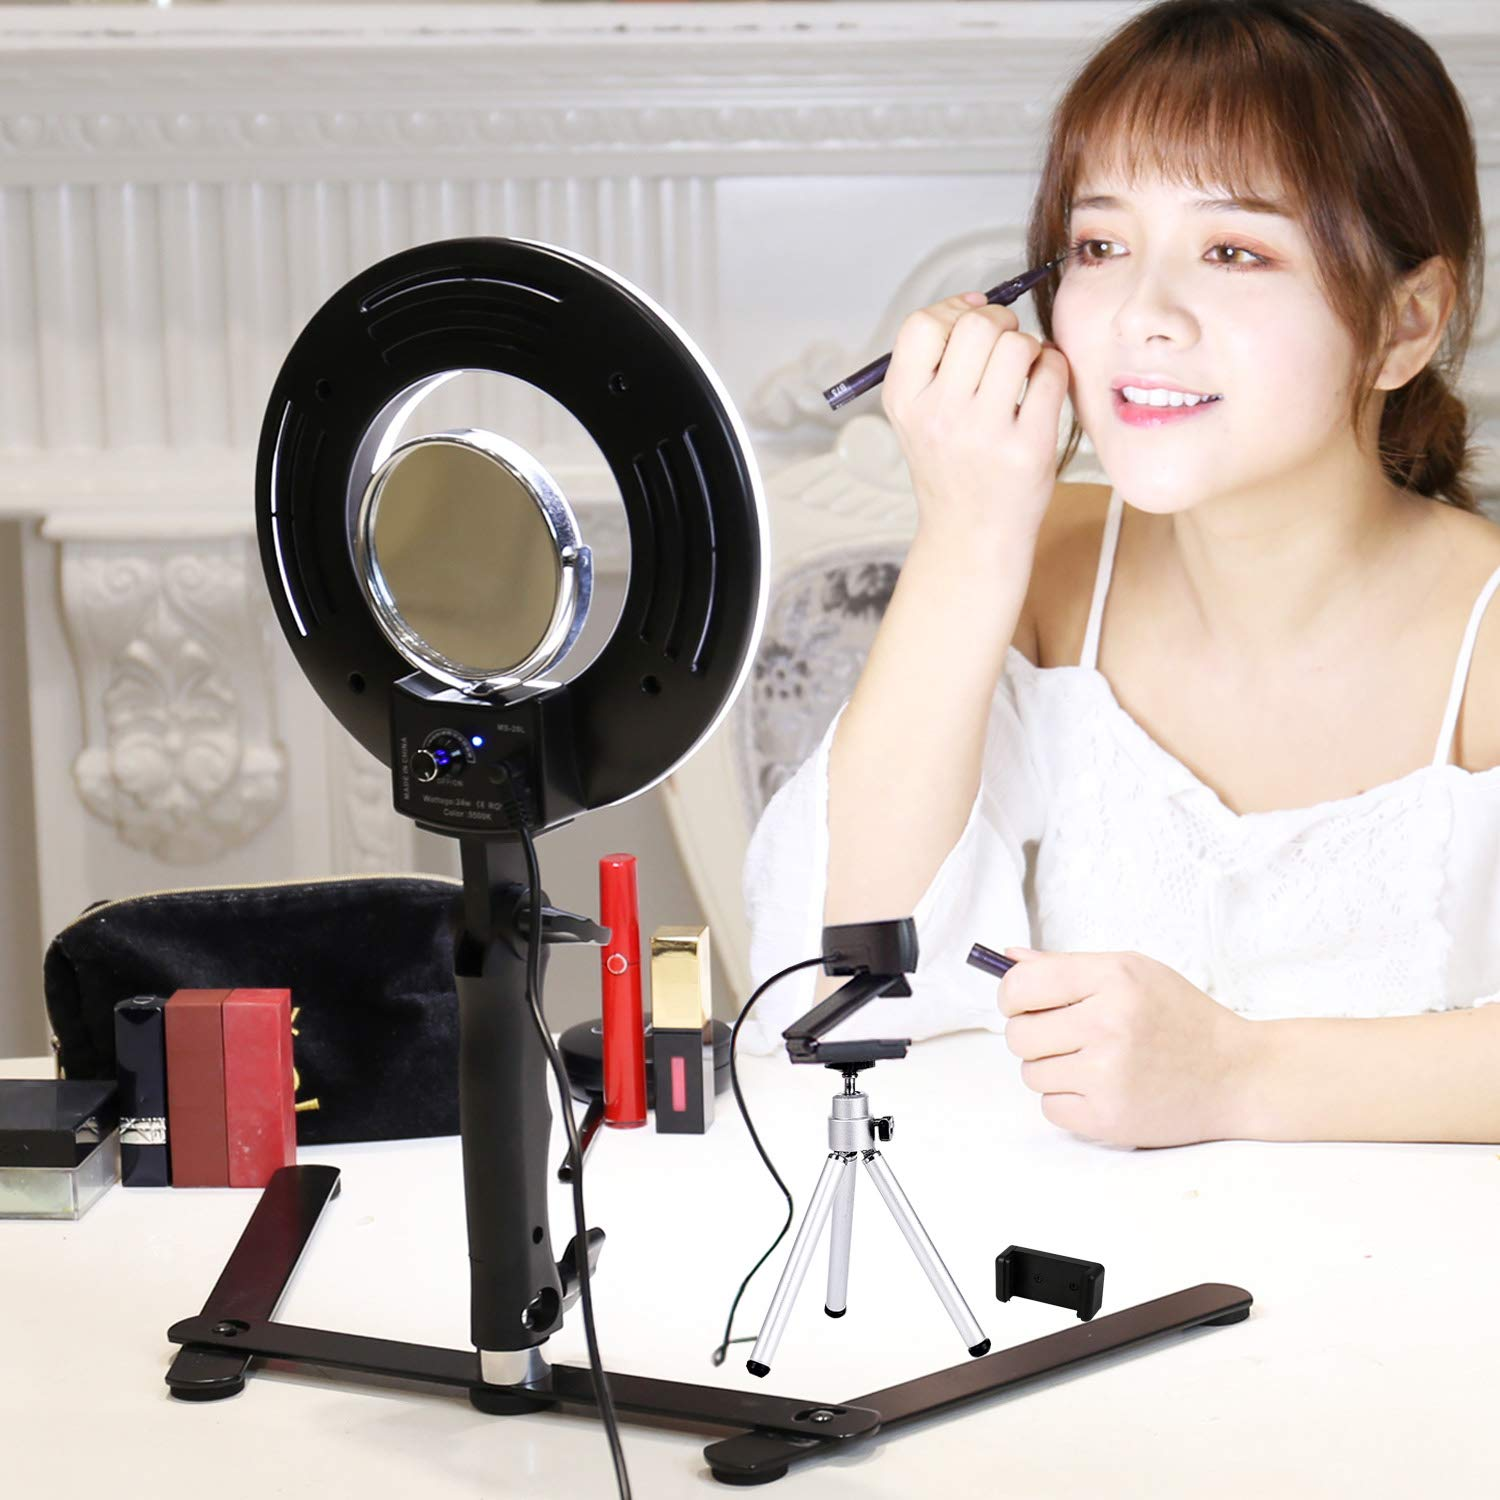 Table Top LED Selfie Ring Light with Stand for Makeup 8-inch Dimmable 24W 5500K O Circular Beauty Lamp with Bracket+3.5'' Mirror+Mini Tripod+Phone Clamp,for YouTube Vine Self-Portrait Video Photography by Konseen